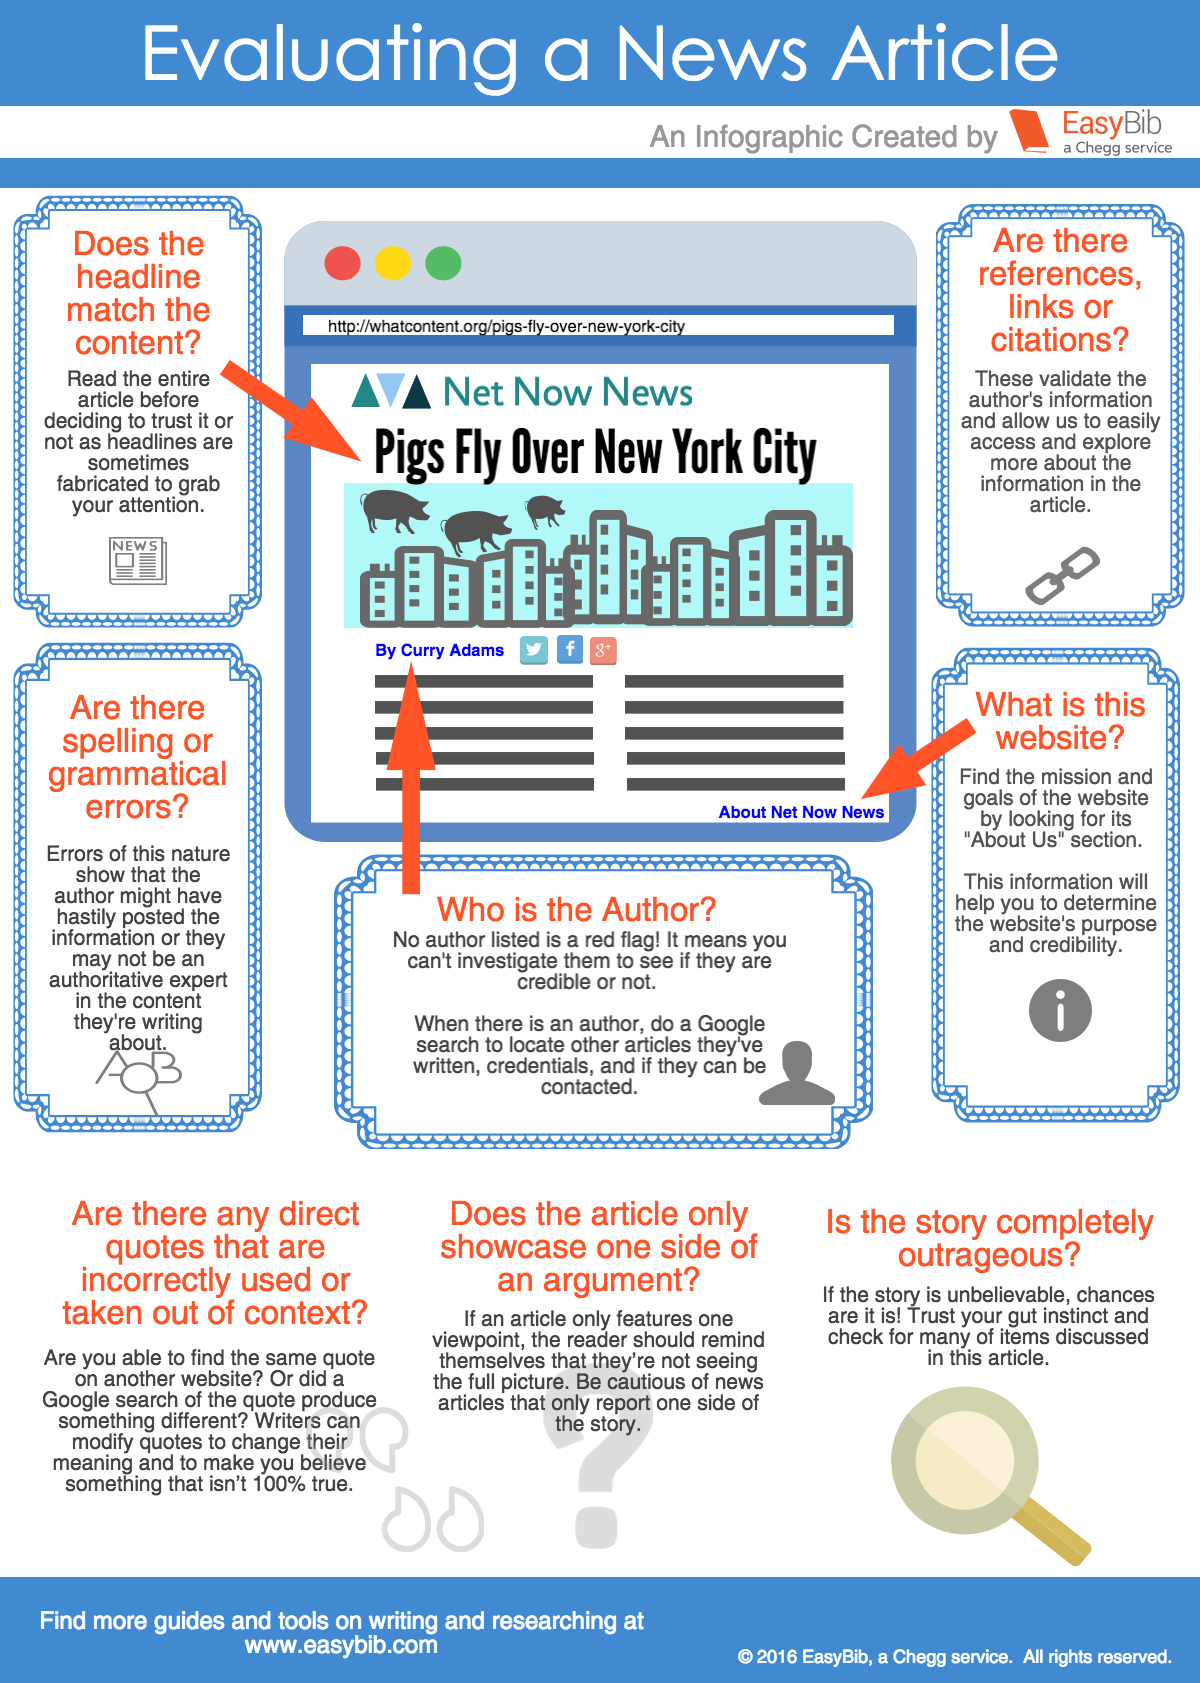 evaluating a news article infographic depicting the flow of news sources and fact checking